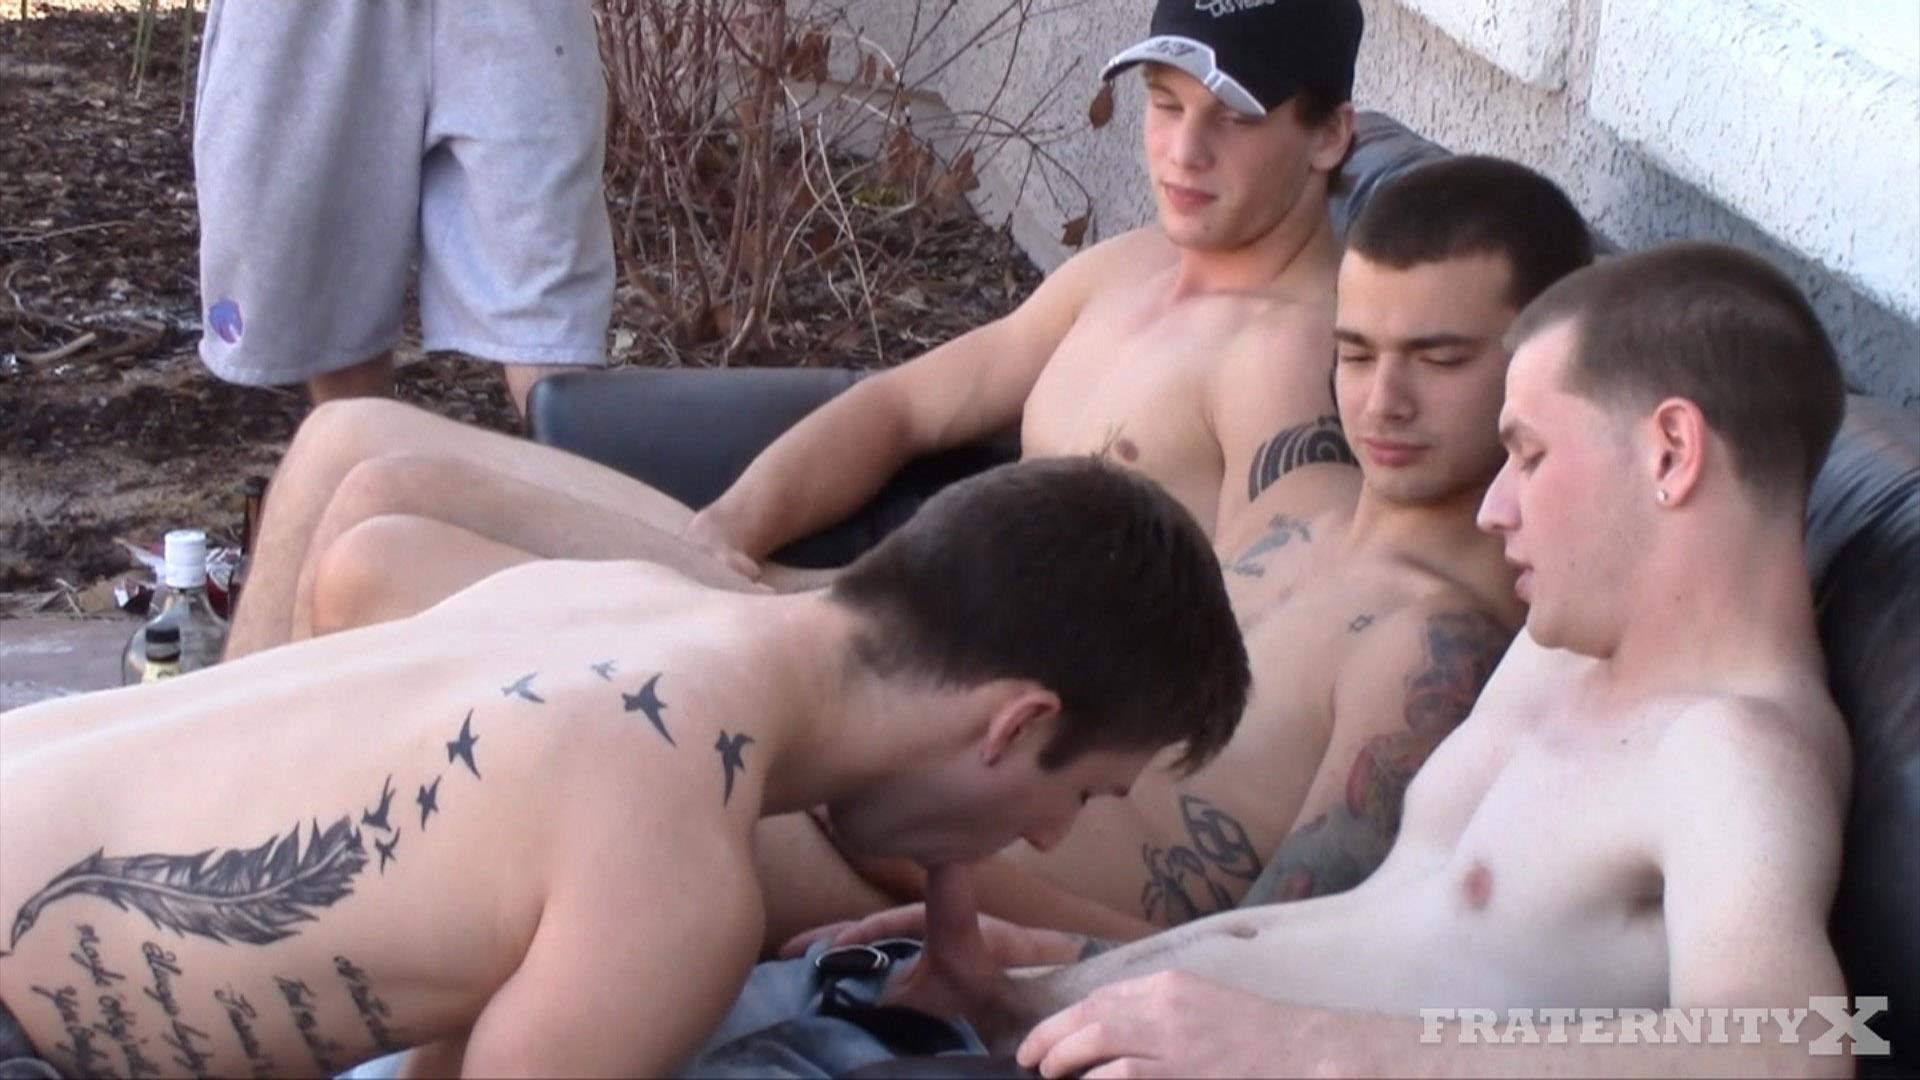 Fraternity X Frenchy Naked Frat Guys Barebacking Outside Big Dicks Amateur Gay Porn 02 Fraternity Boys Fucking Bareback Outside On The Frat Patio